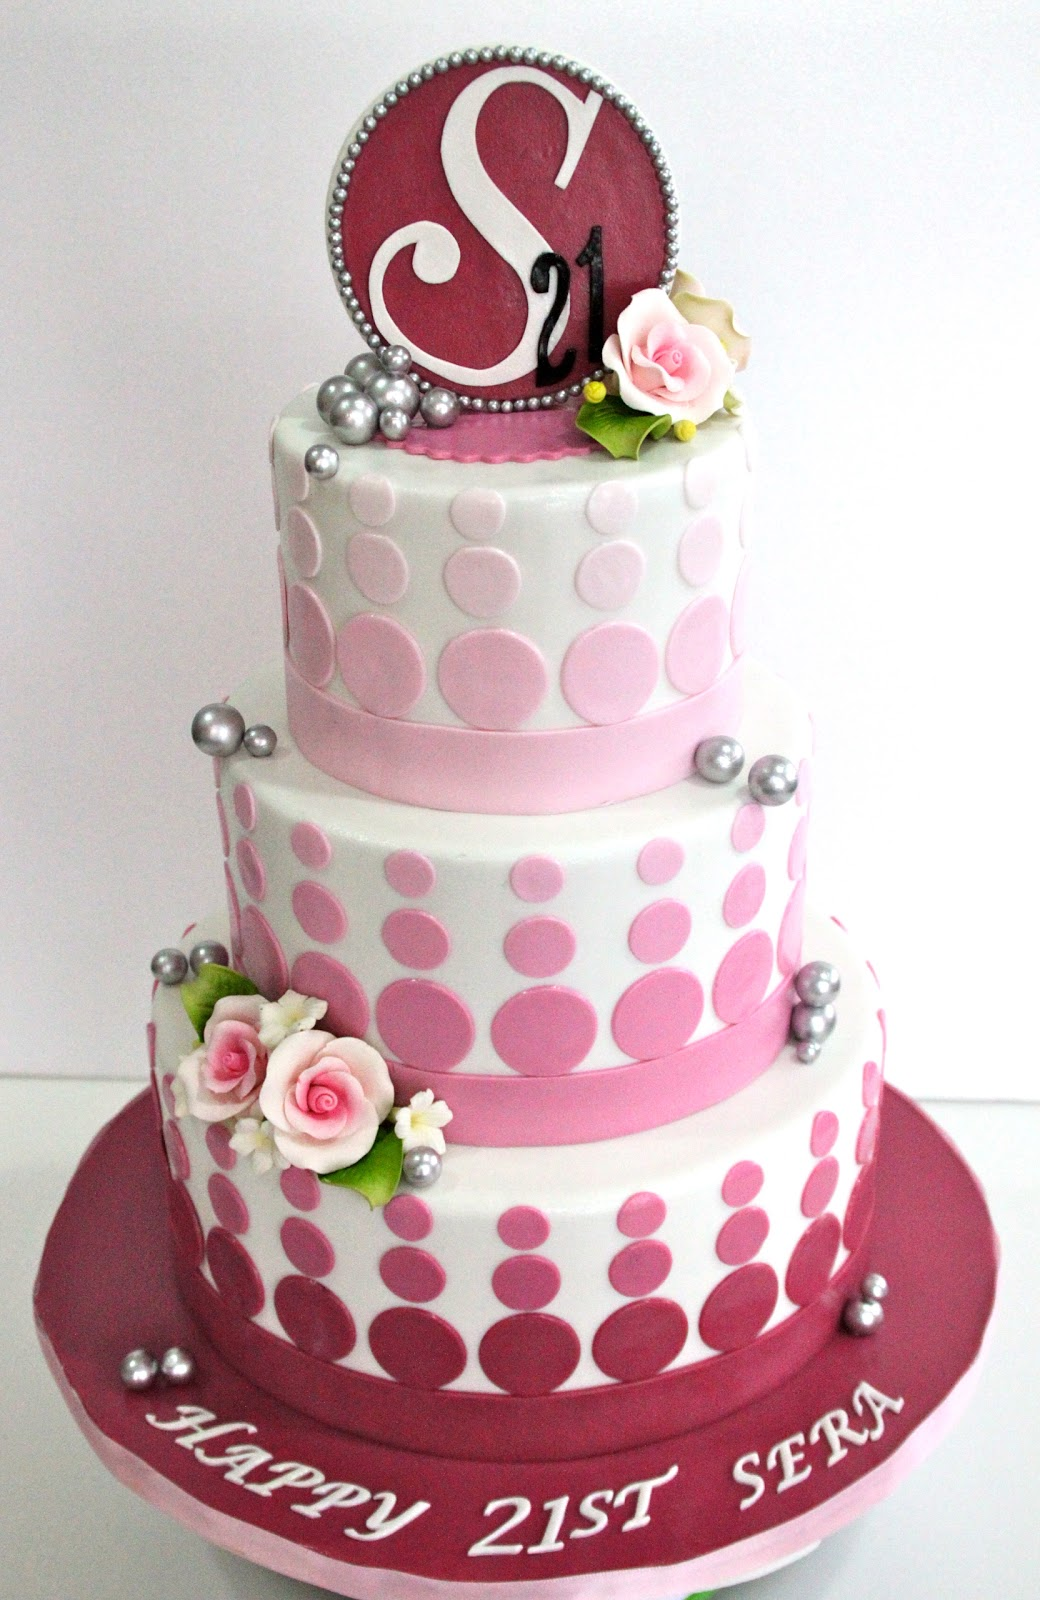 21st Birthday Cake Design For Her : Celebrate with Cake!: Pink 21st Birthday Cake